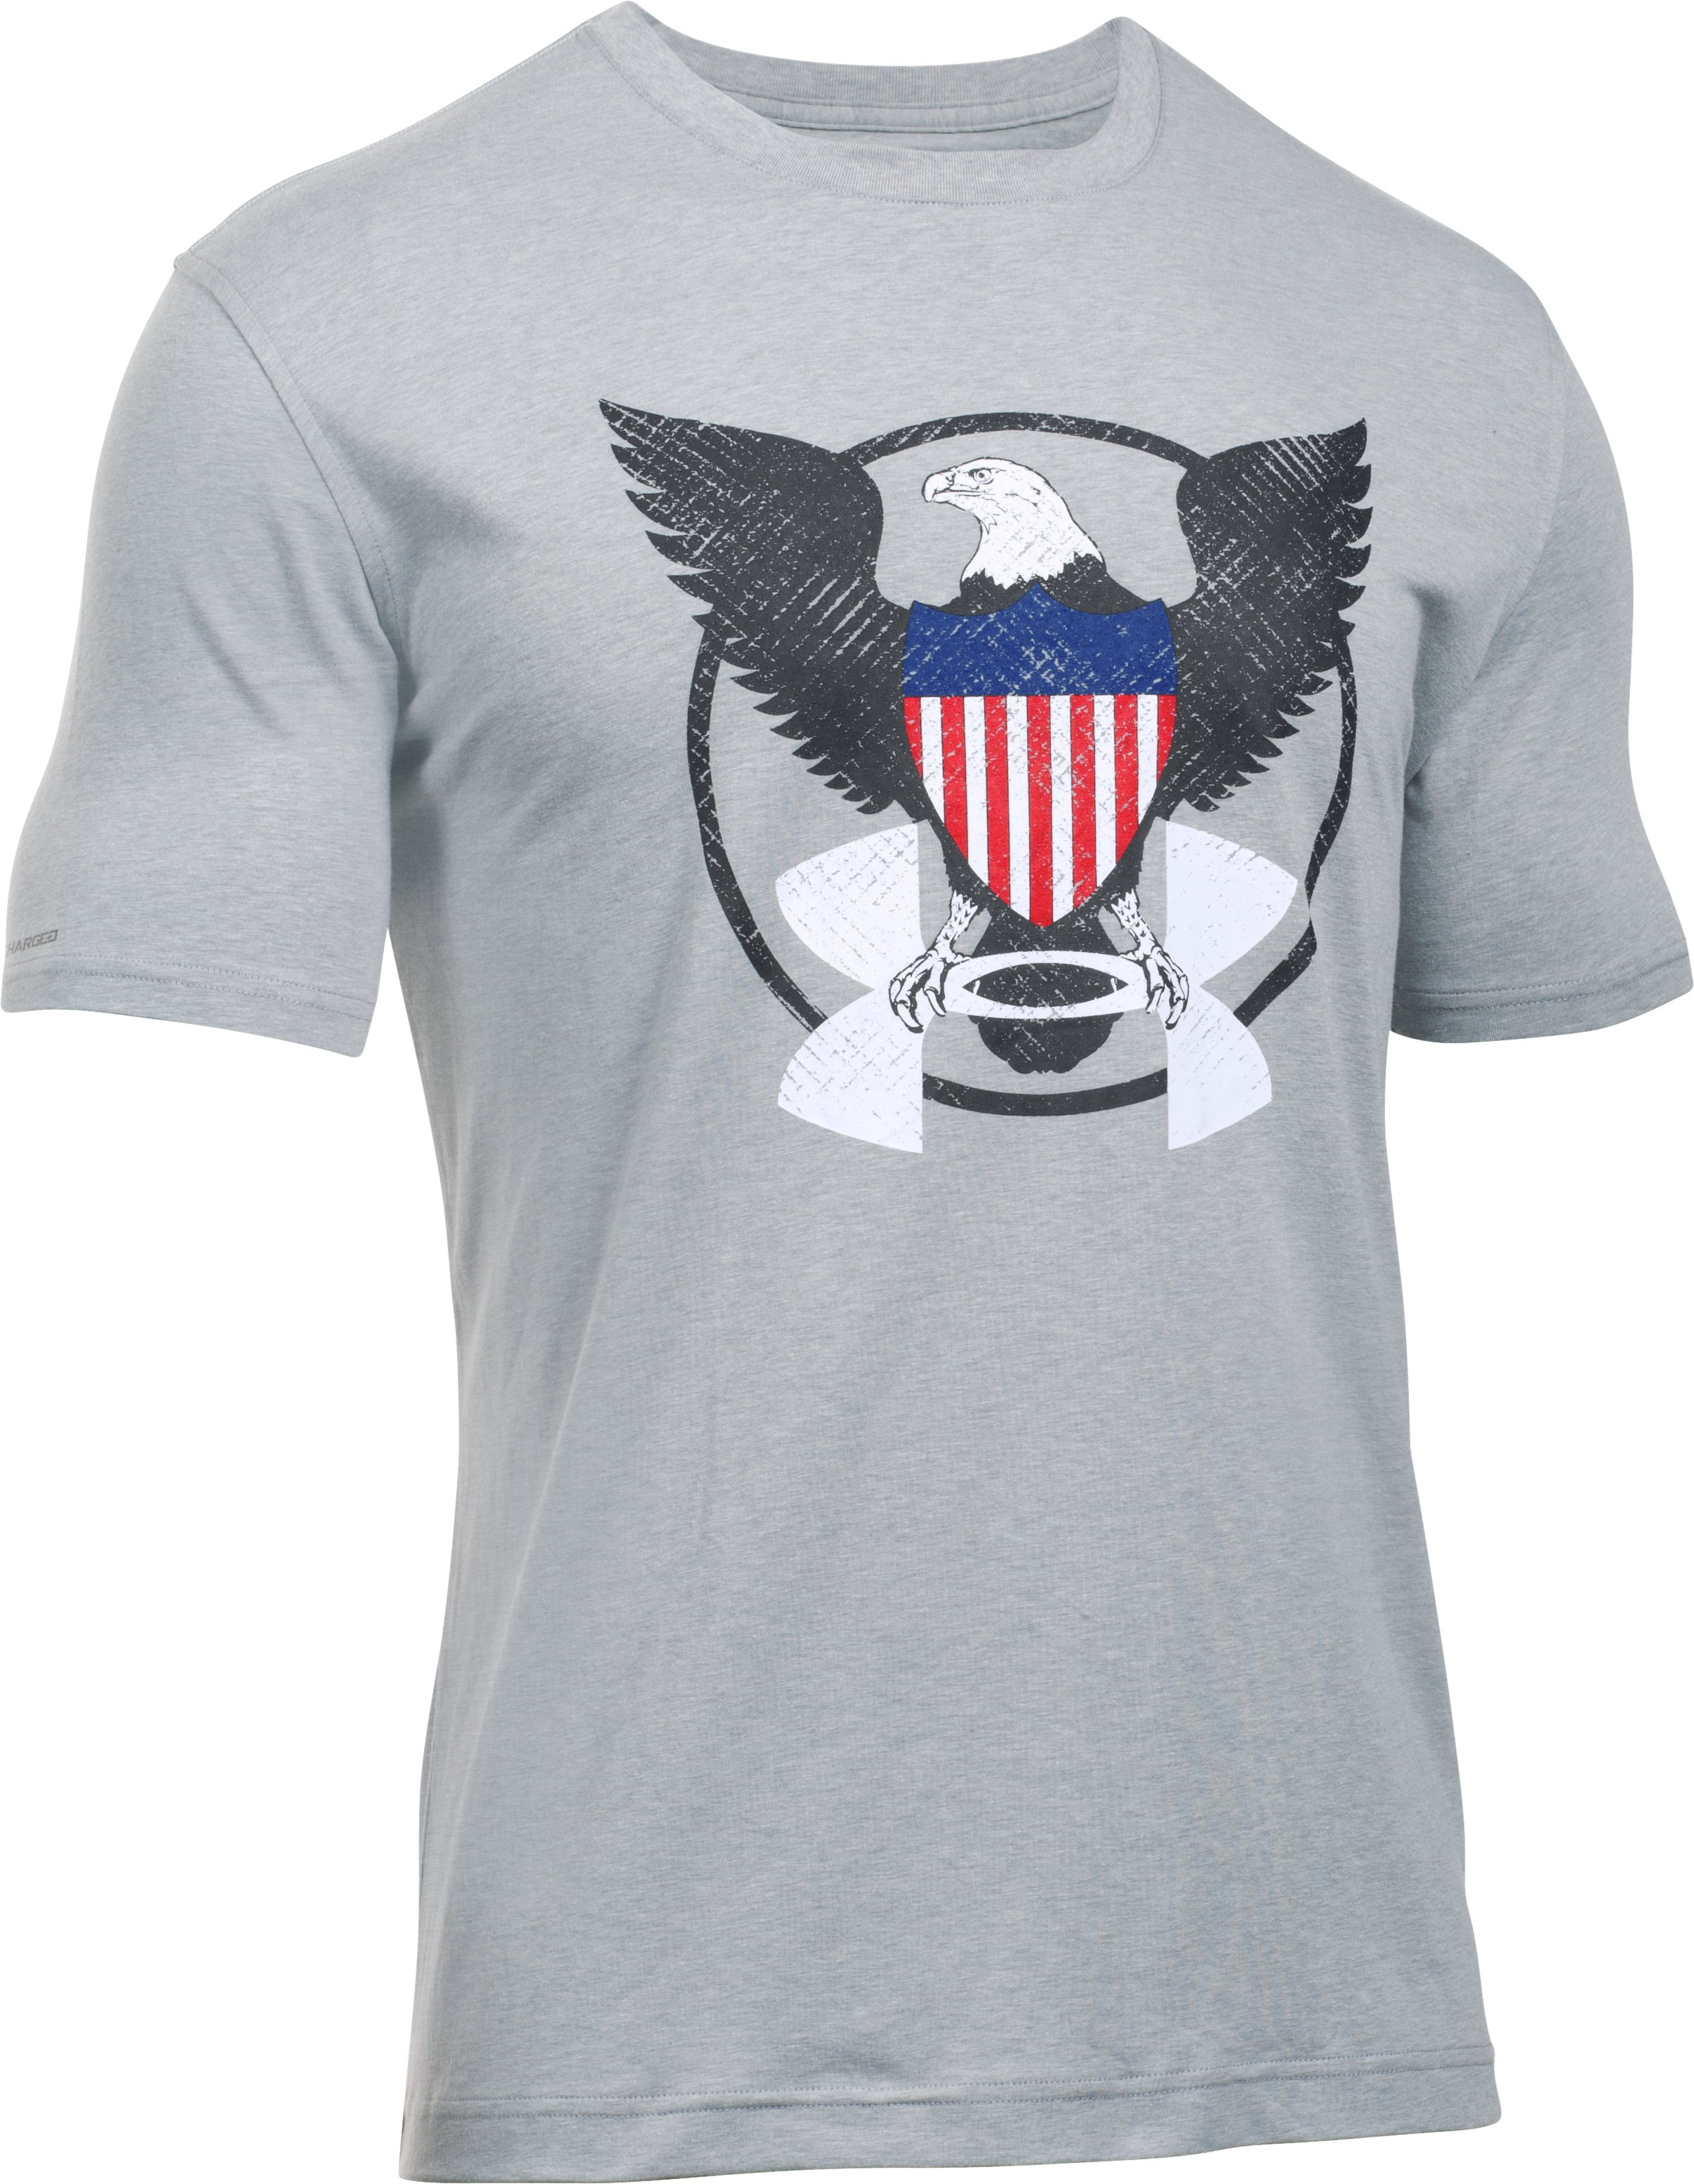 Men's UA Freedom USA Eagle T-Shirt, True Gray Heather,